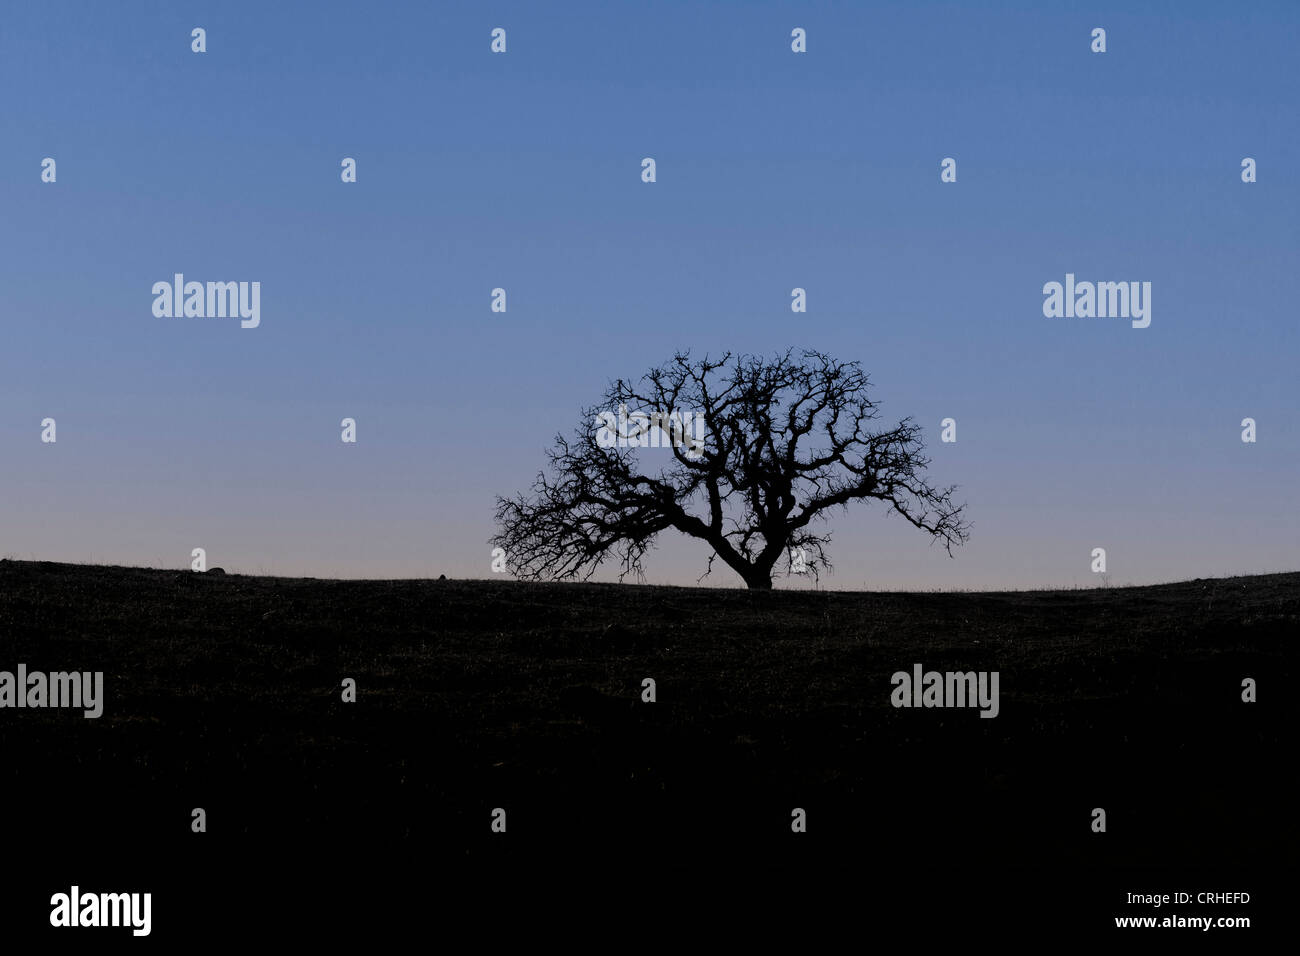 A lone tree at dusk - Stock Image